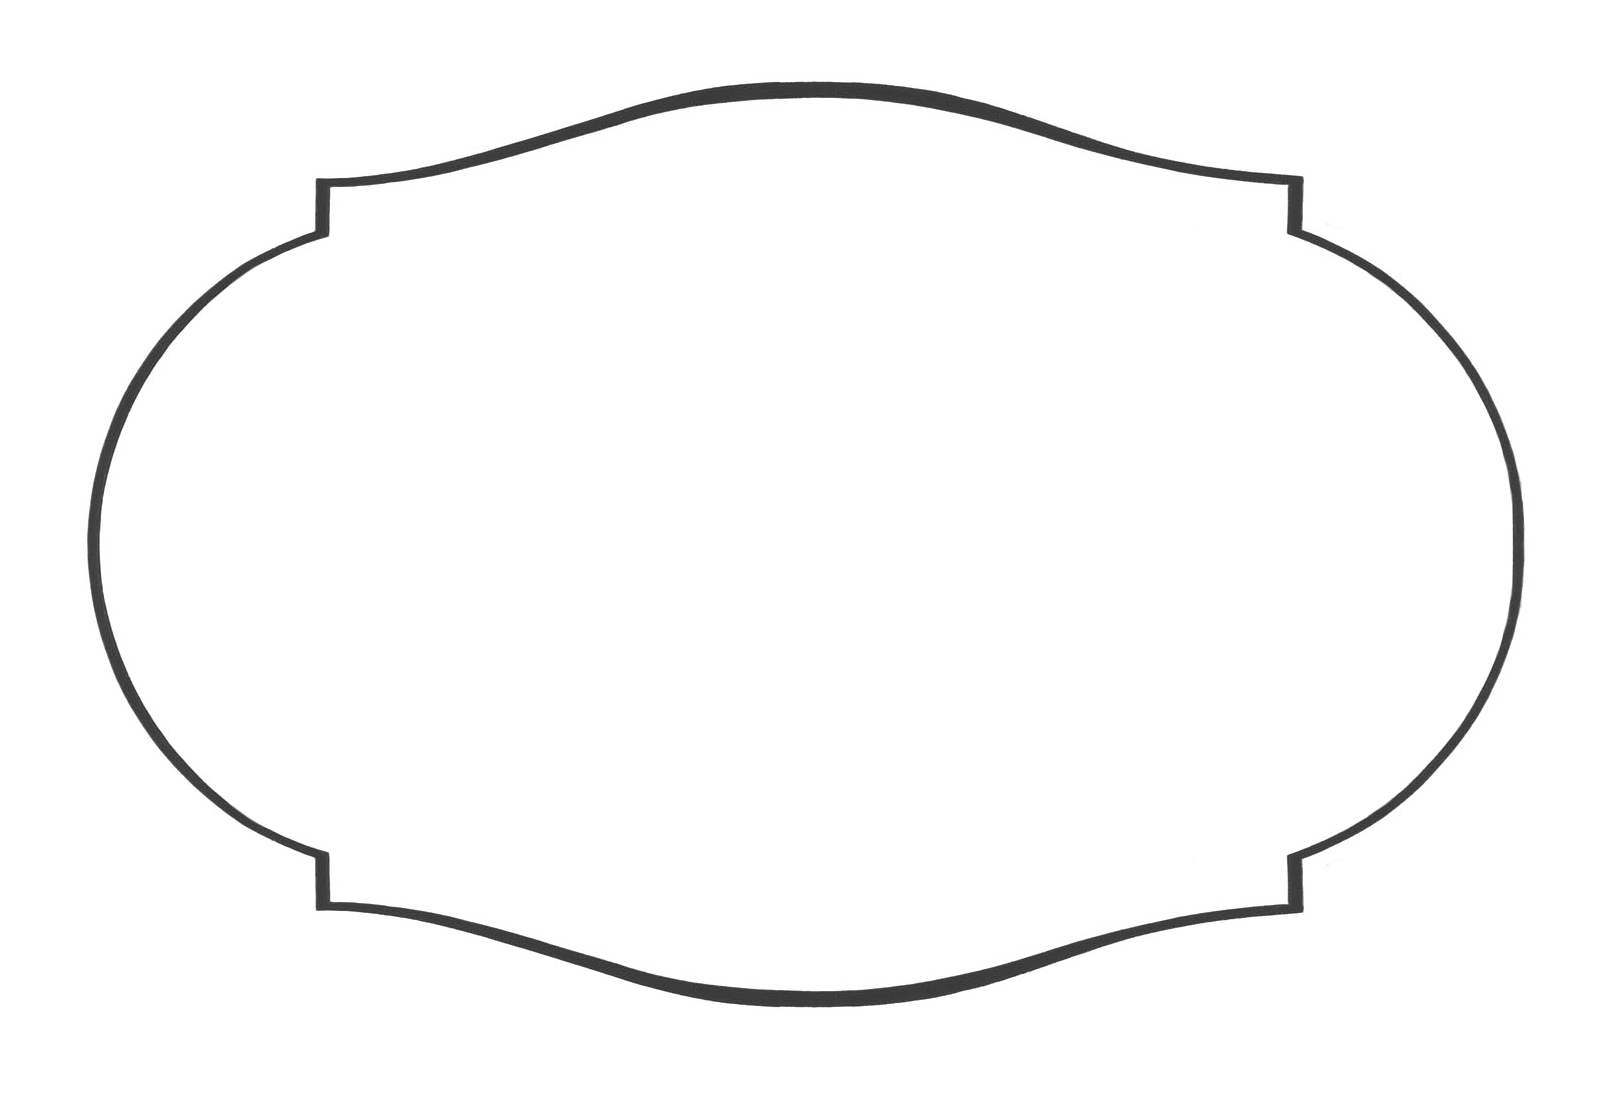 Free label shapes cliparts.